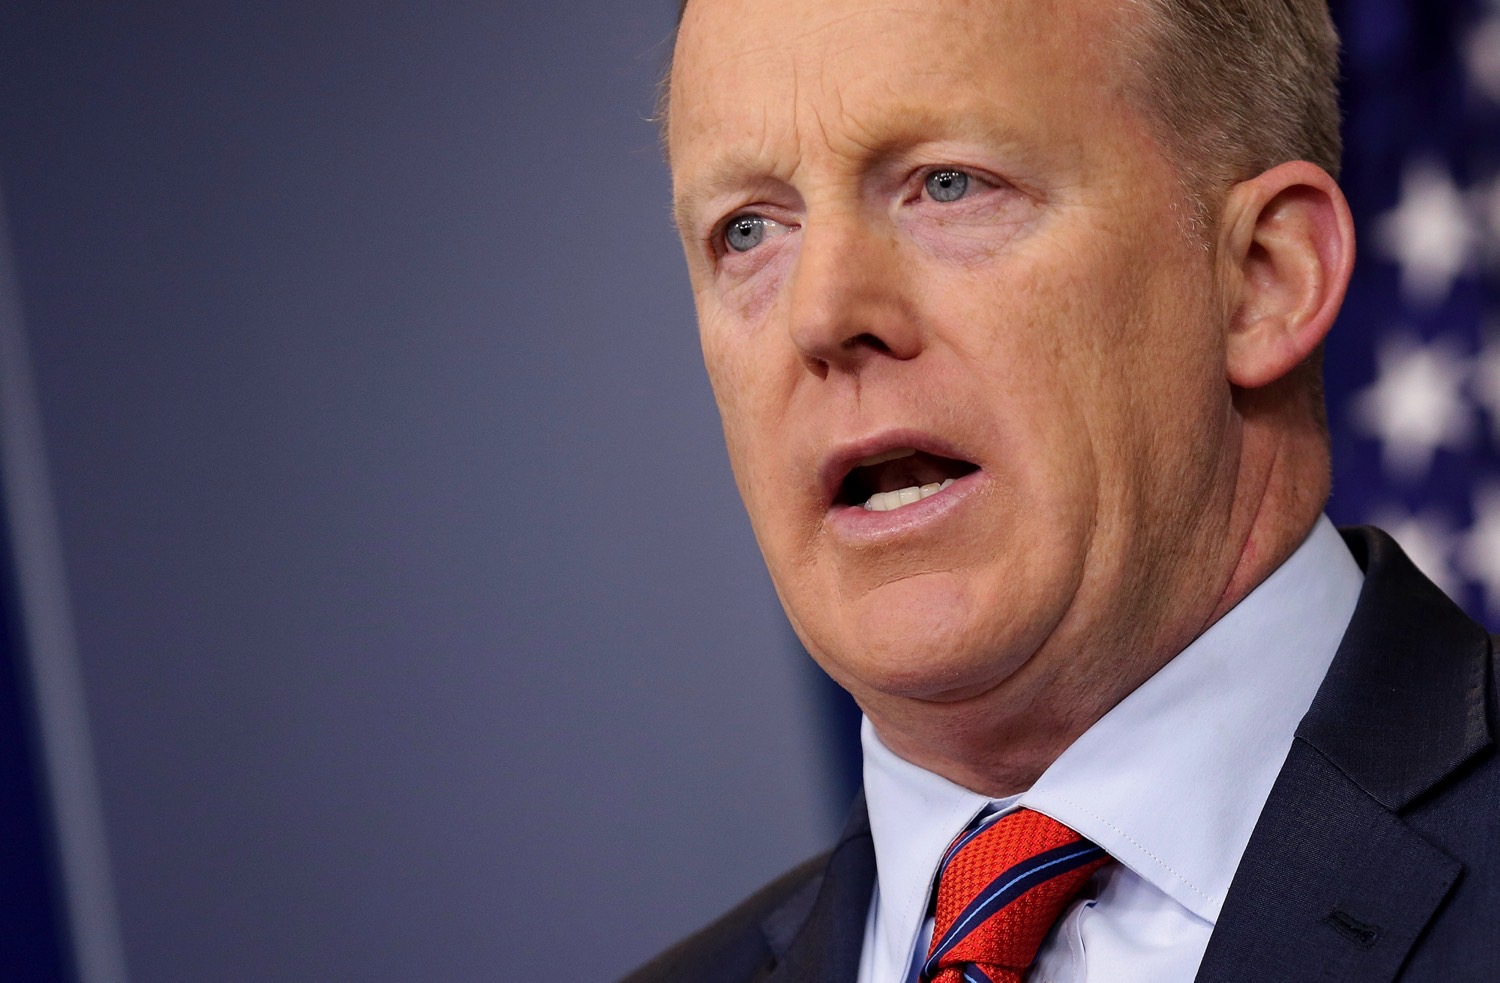 Trump Spokesman Sean Spicer's Comment Comparing Assad to Hitler Sparks Outrage